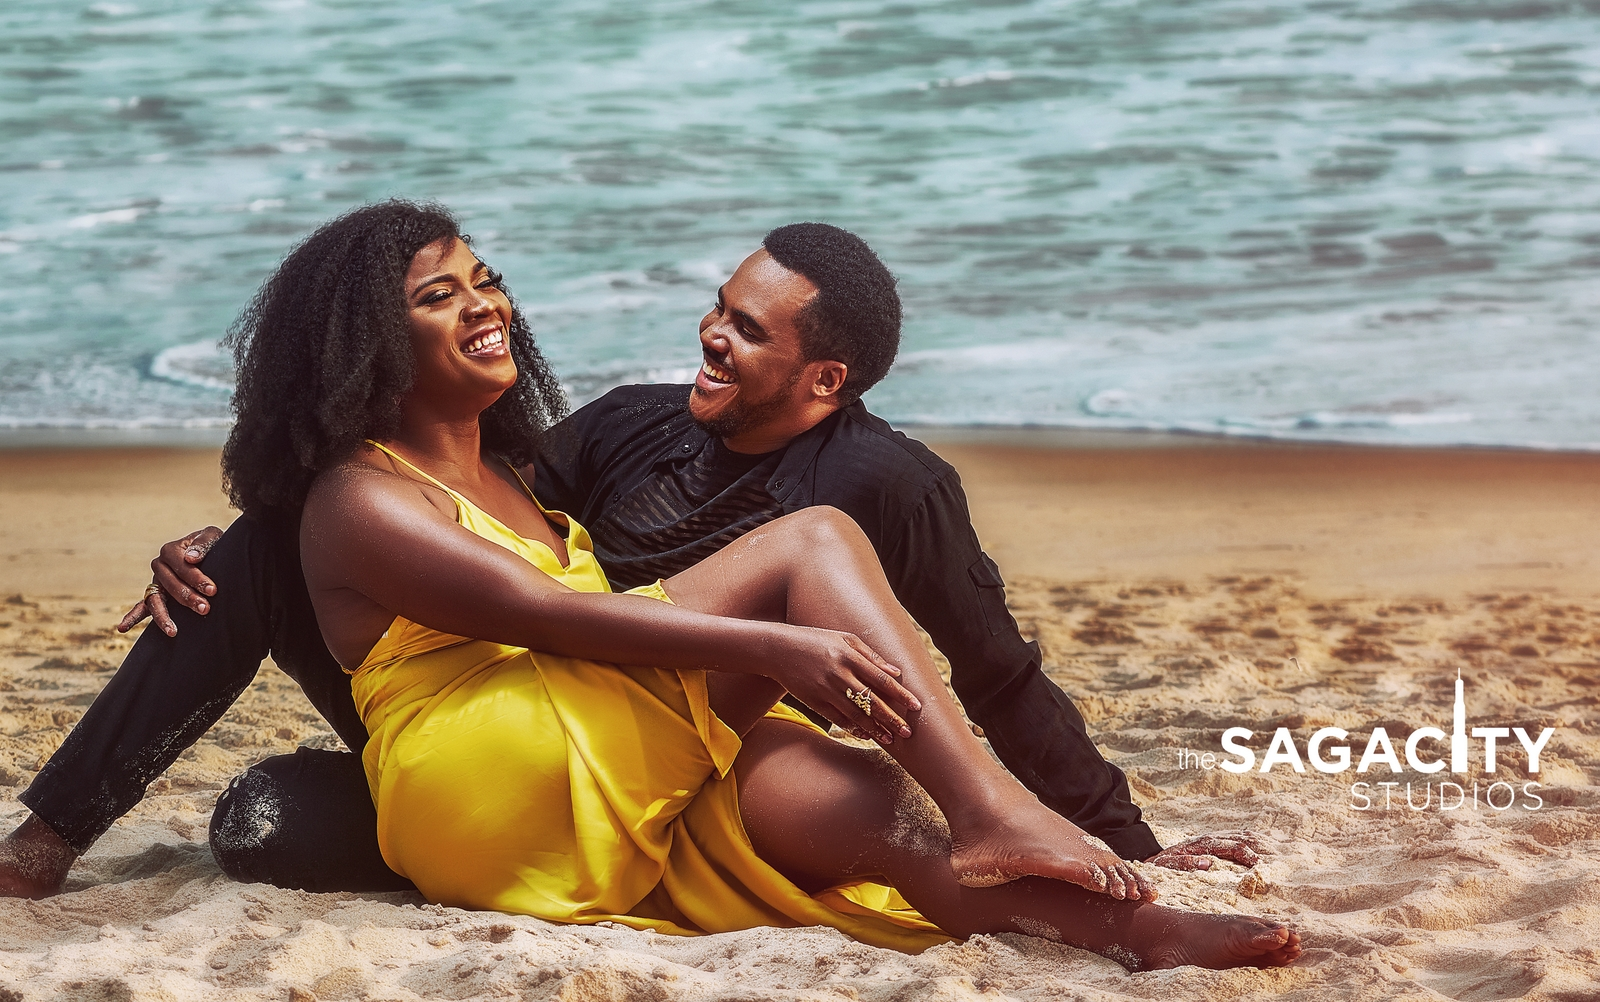 Micheal Okon And Kosi Obialor Journey To Finding Love